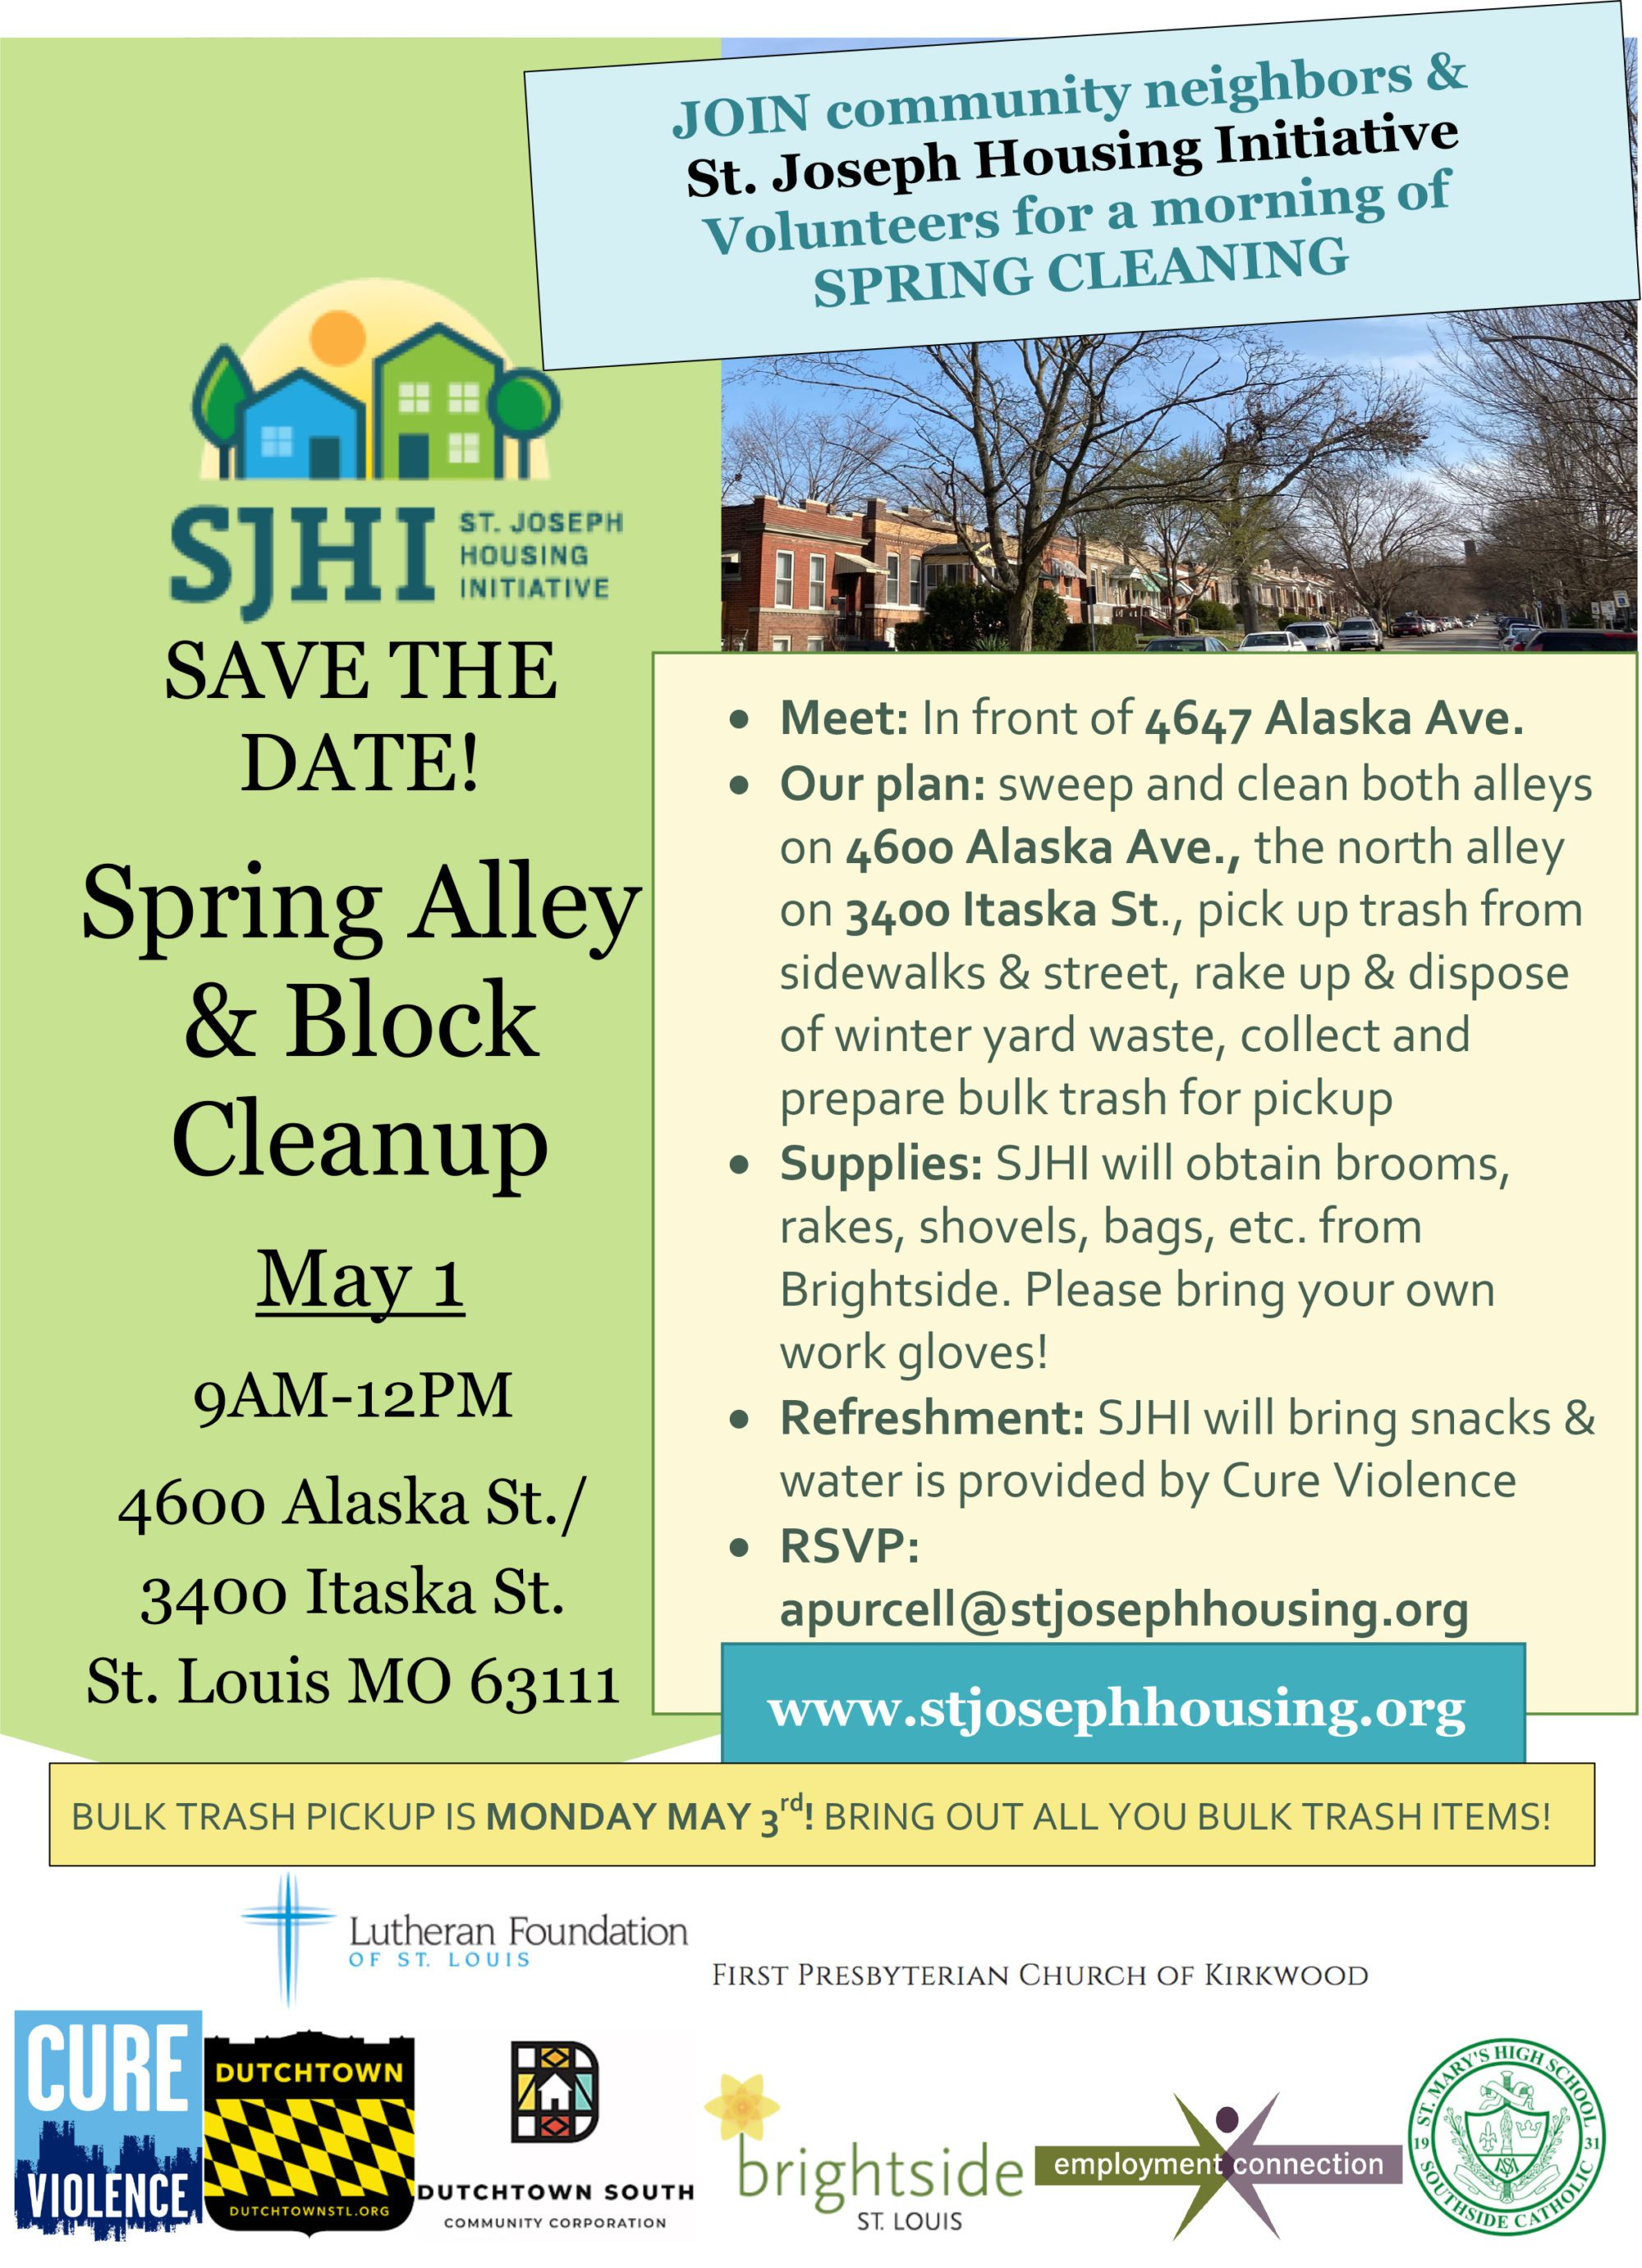 Flyer for the St. Joseph Housing Initiative Spring Cleanup.